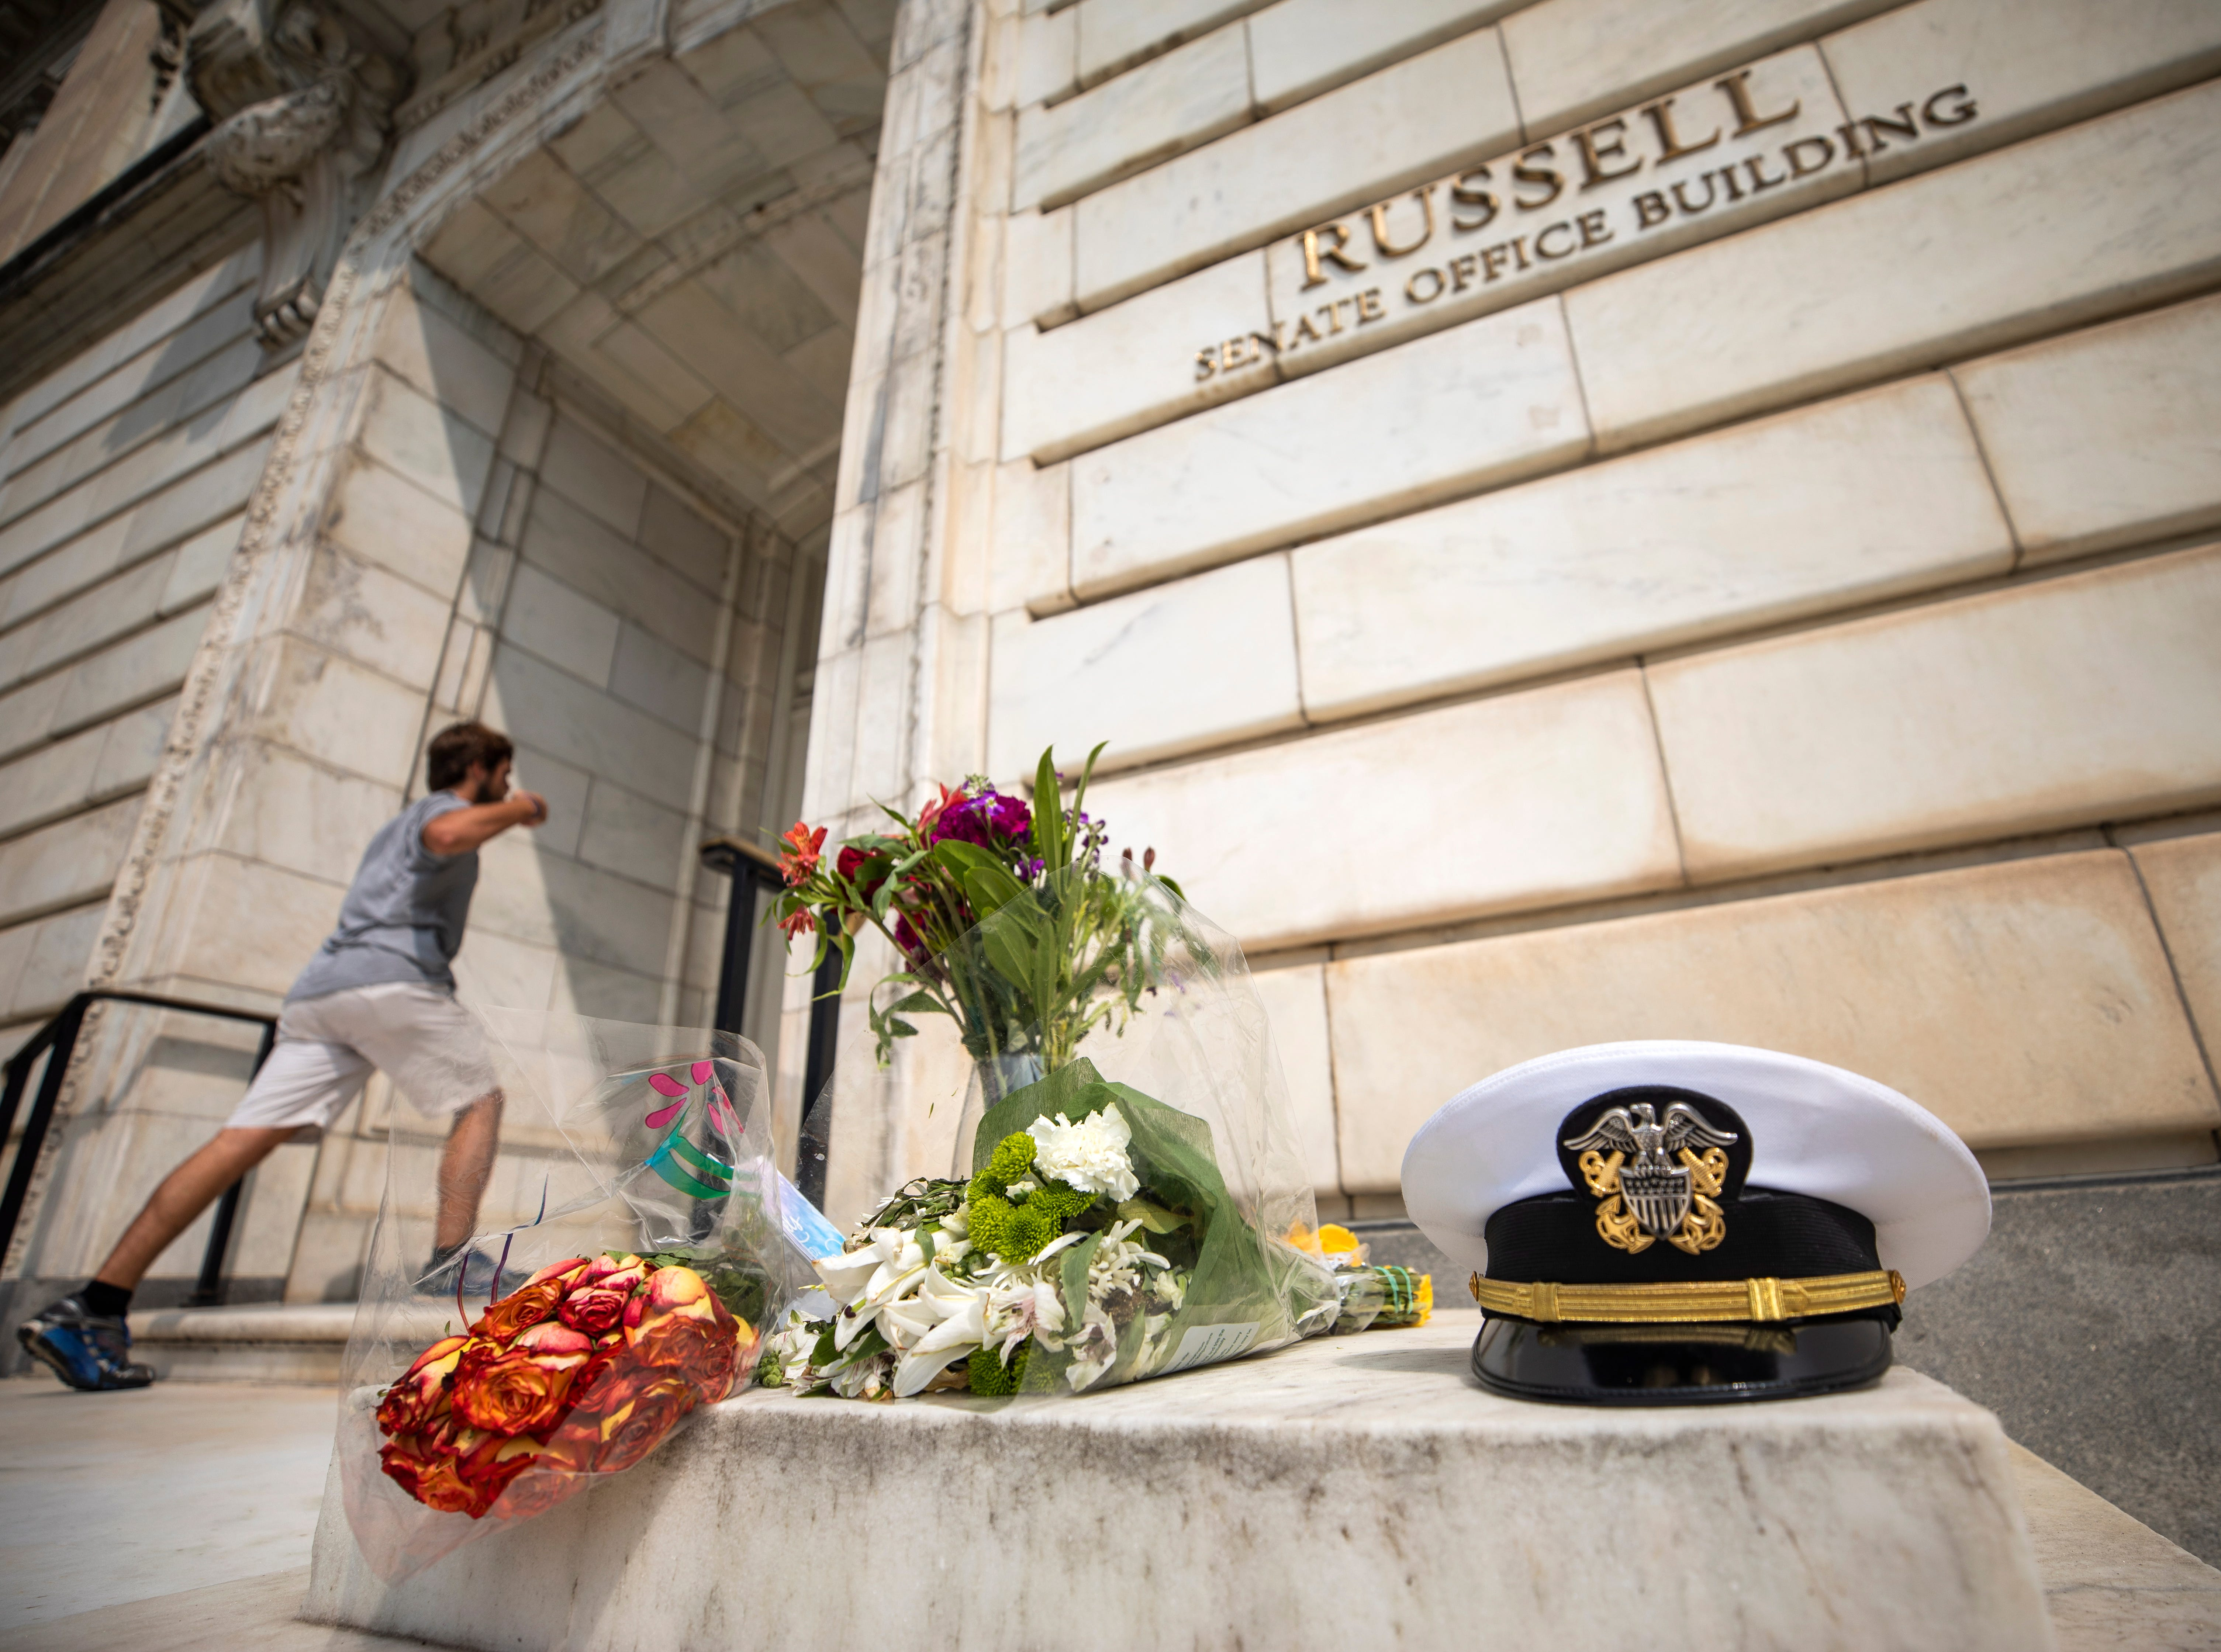 A small memorial for Republican Senator John McCain, who passed away at his home in Cornville, Arizona, USA, on 25 August at the age of 81, outside the Russell Senate Office Building in Washington, DC on Aug. 27, 2018. Democratic Senate Minority Leader Chuck Schumer said he will sponsor legislation to rename the Senate building after Senator McCain.